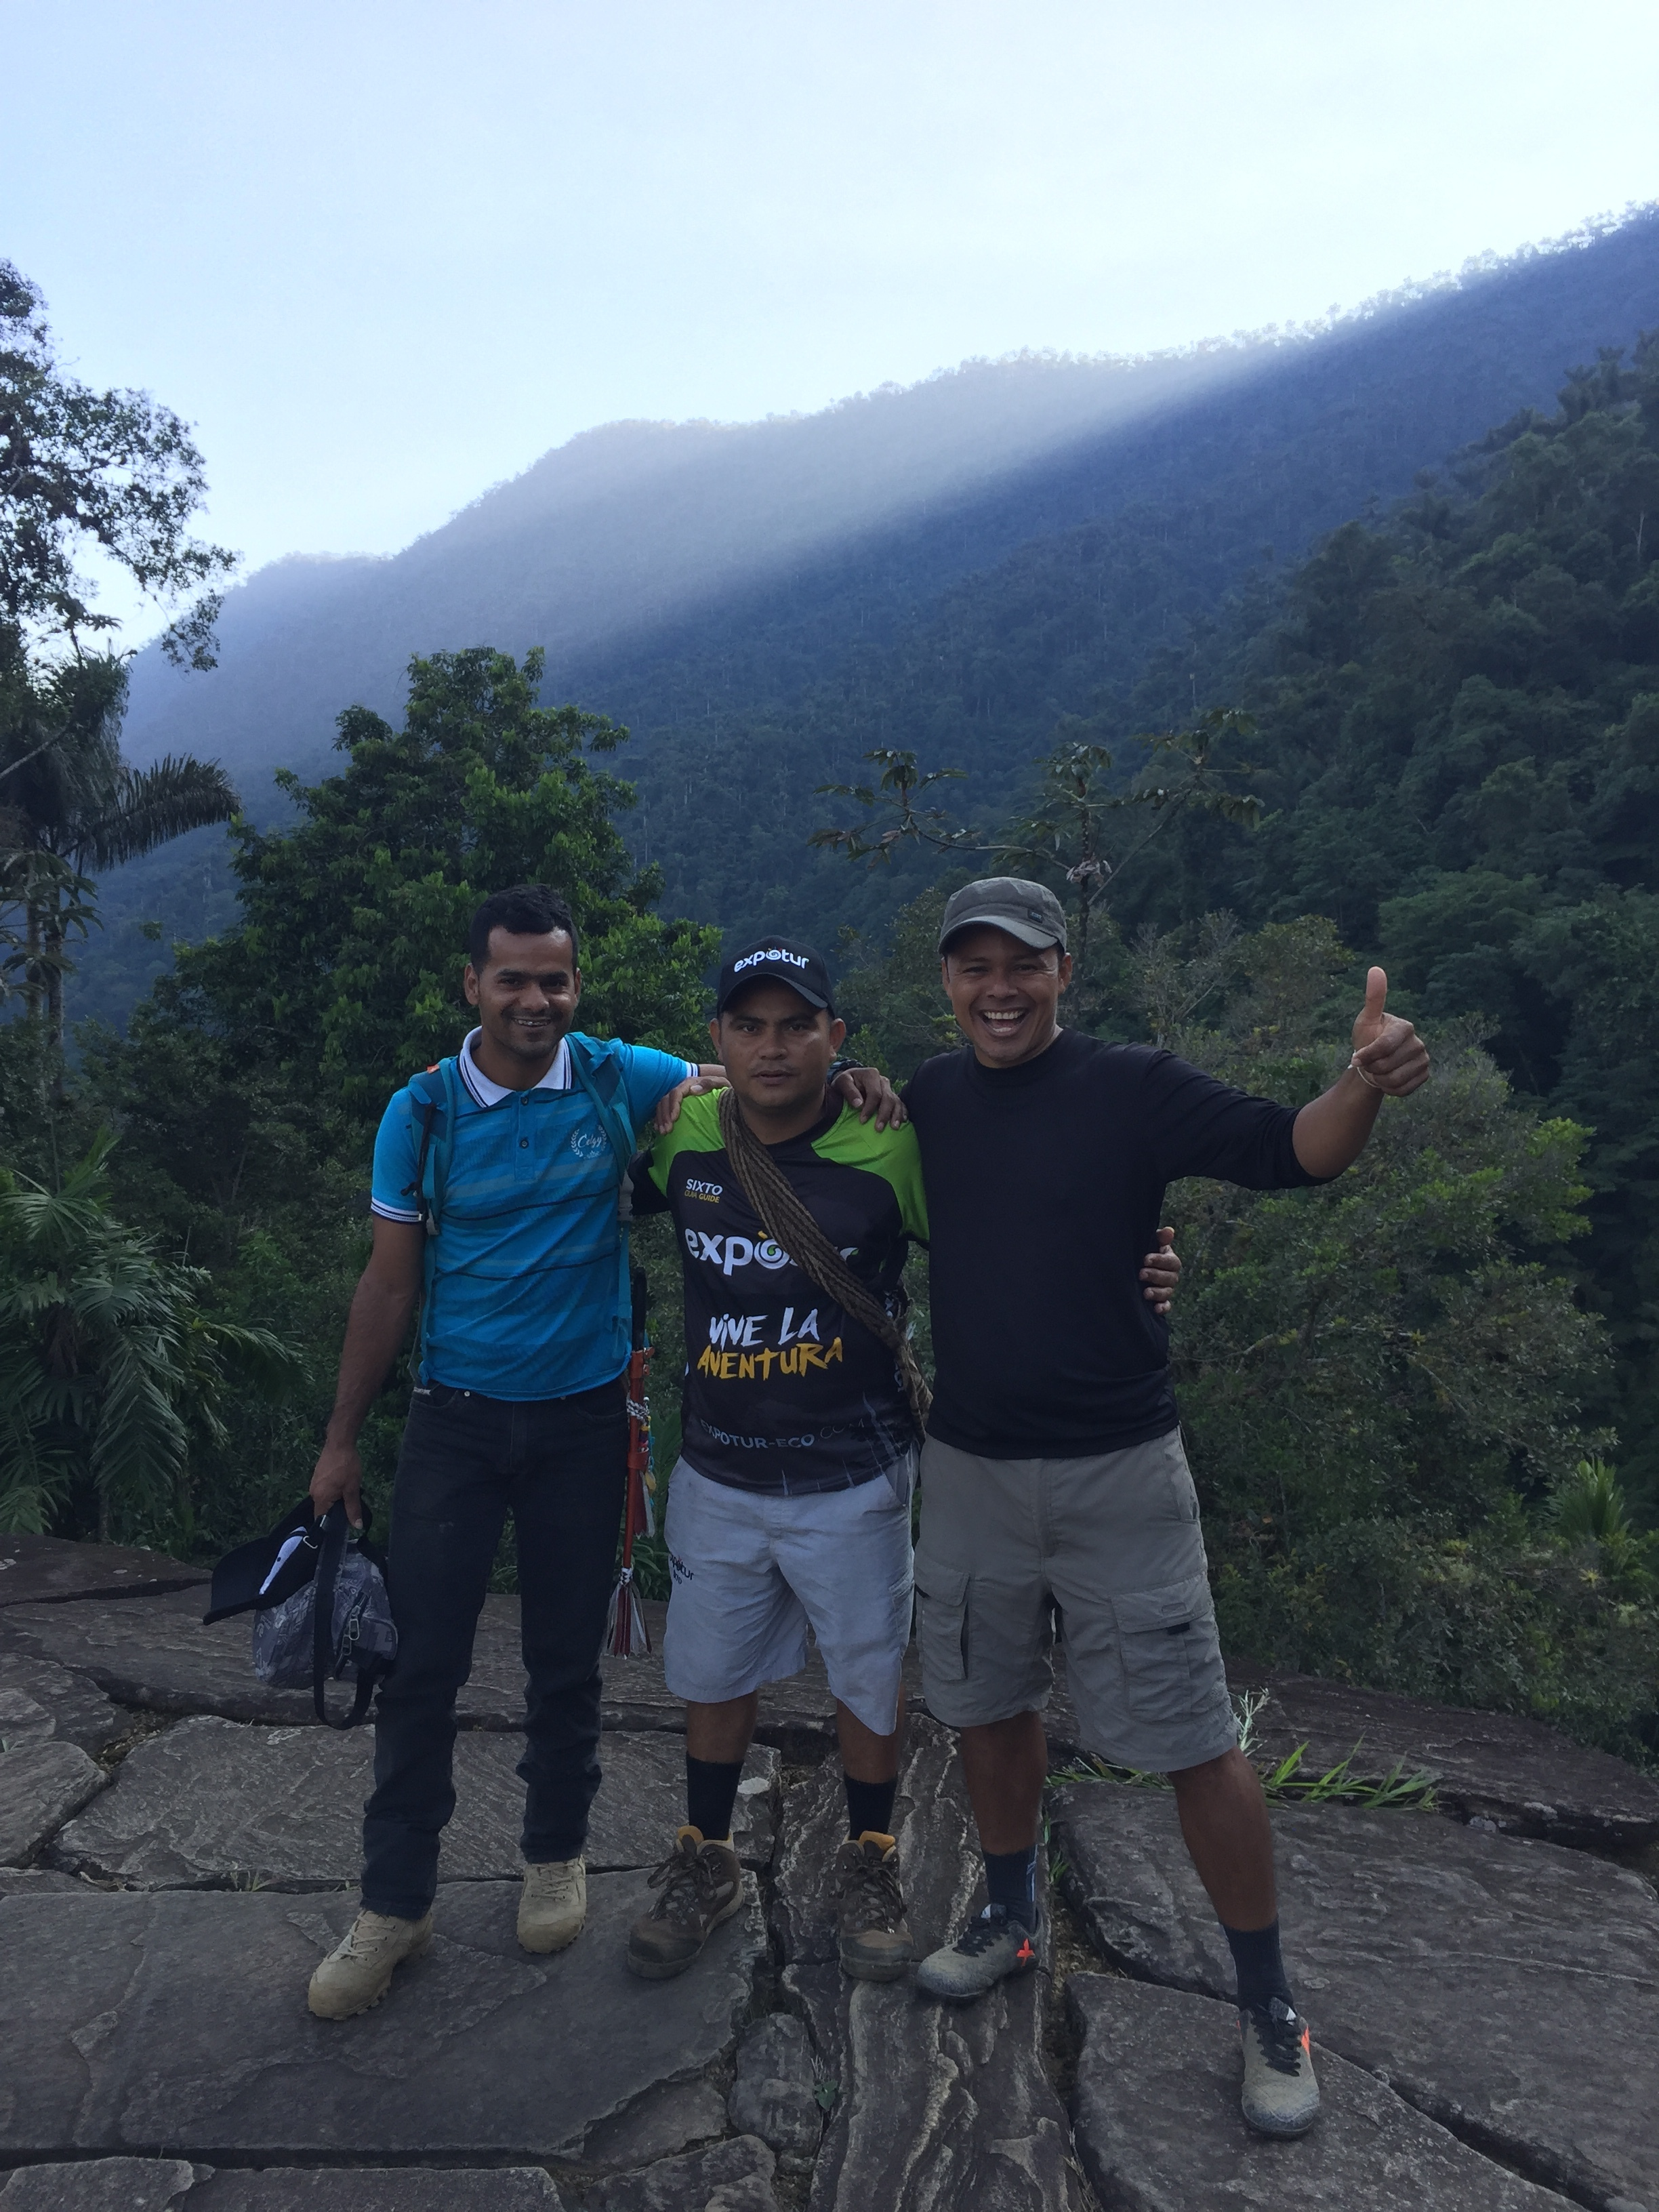 Our amazing guides, from left to right - Louis, Sixto & Isidro.